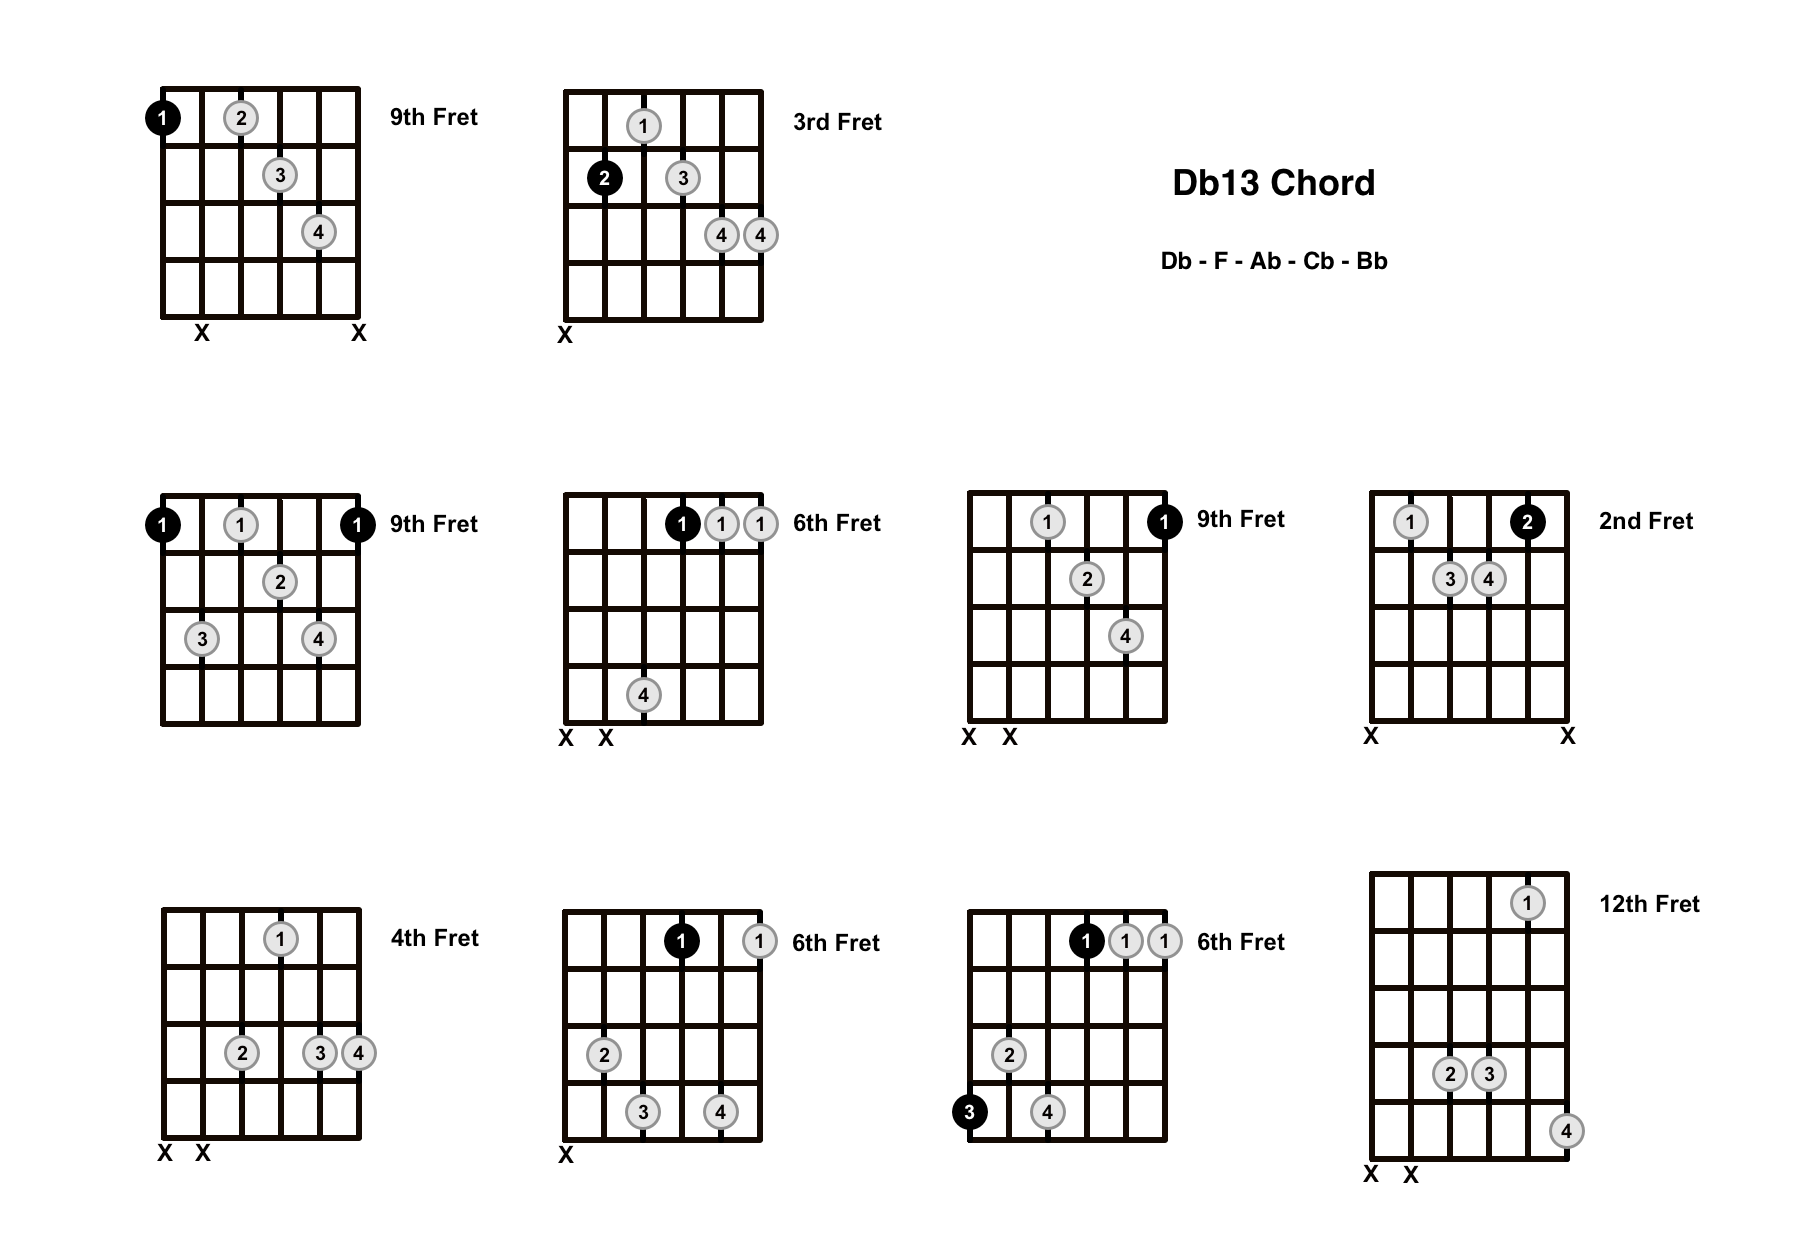 Db13 Chord On The Guitar (D Flat 13) – Diagrams, Finger Positions and Theory